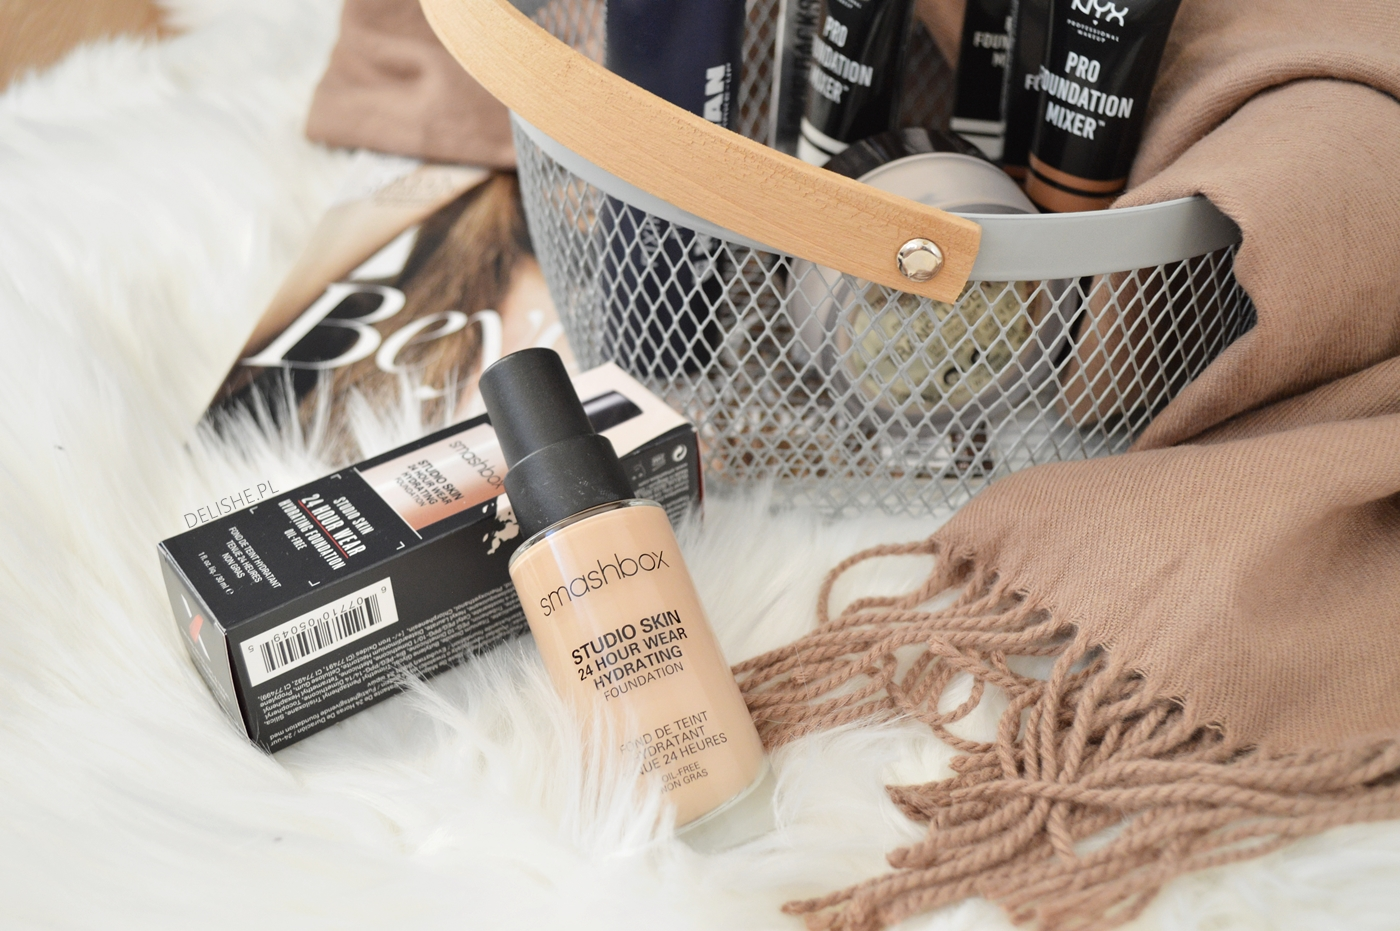 studio skin smashbox blog